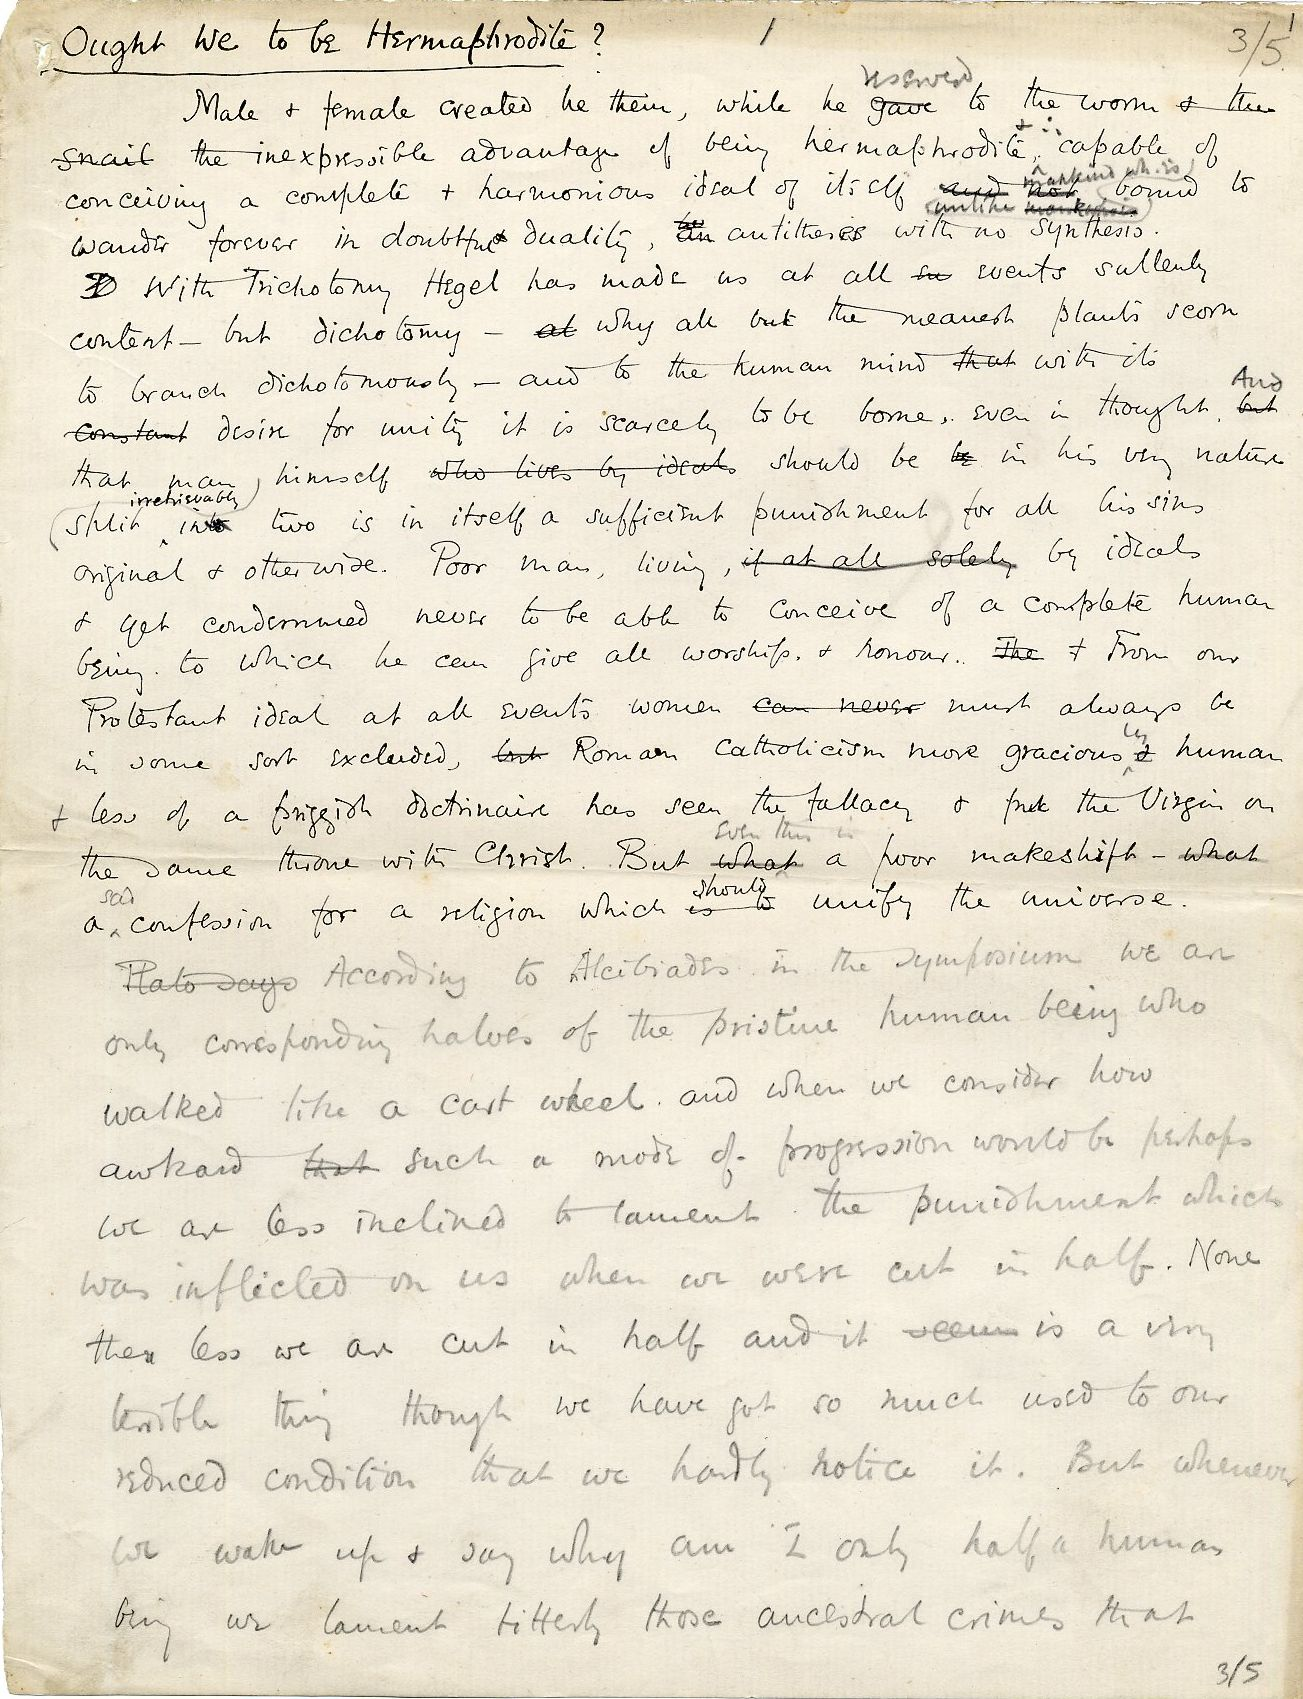 First page of 'Ought we to be Hermaphrodite?', undated Apostles paper read by Fry. [REF/1/10]